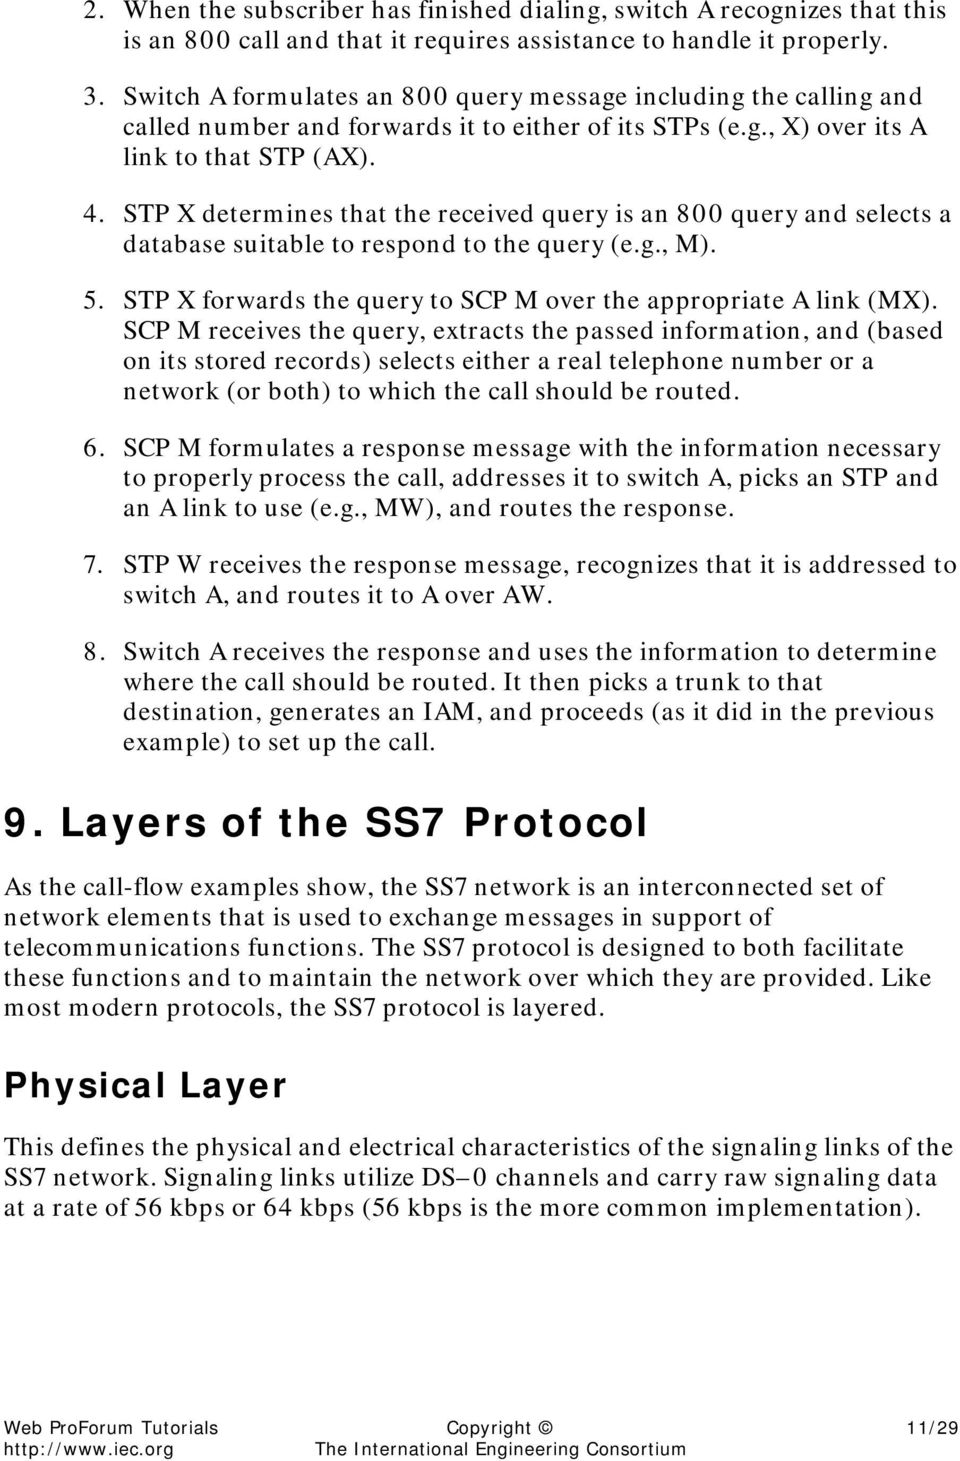 STP X determines that the received query is an 800 query and selects a database suitable to respond to the query (e.g., M). 5. STP X forwards the query to SCP M over the appropriate A link (MX).